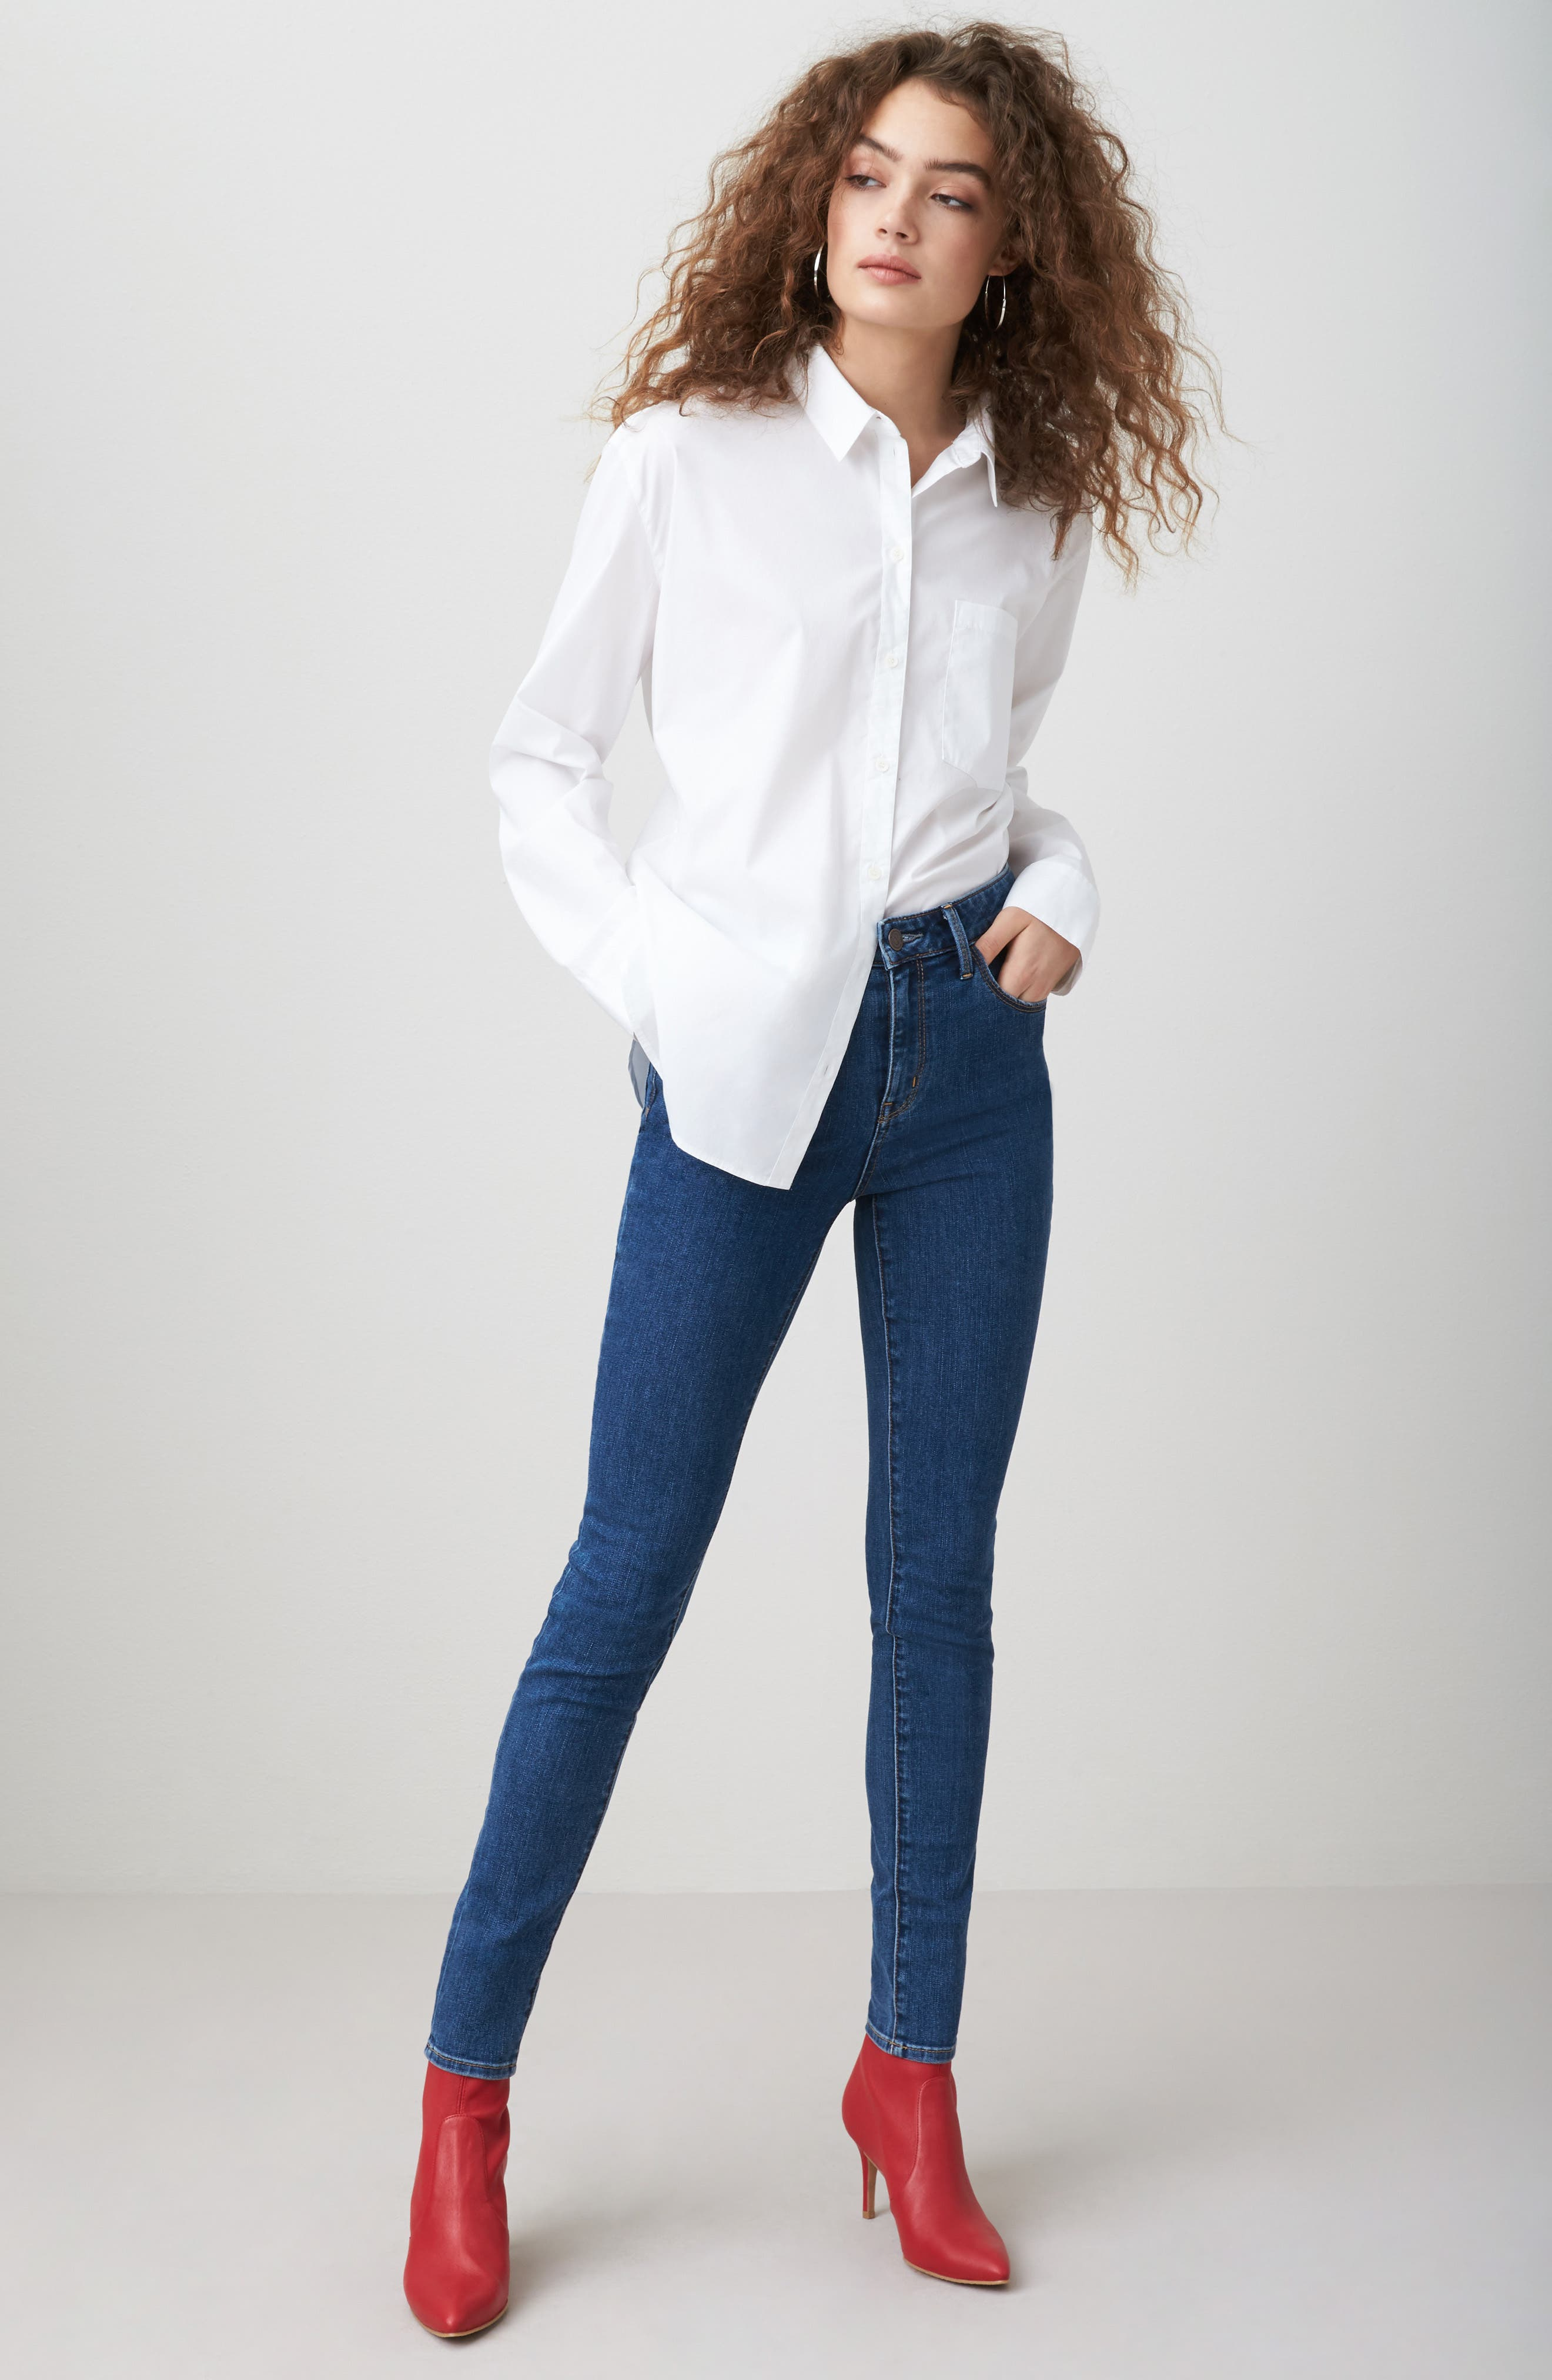 Charity High Waist Skinny Jeans,                             Alternate thumbnail 8, color,